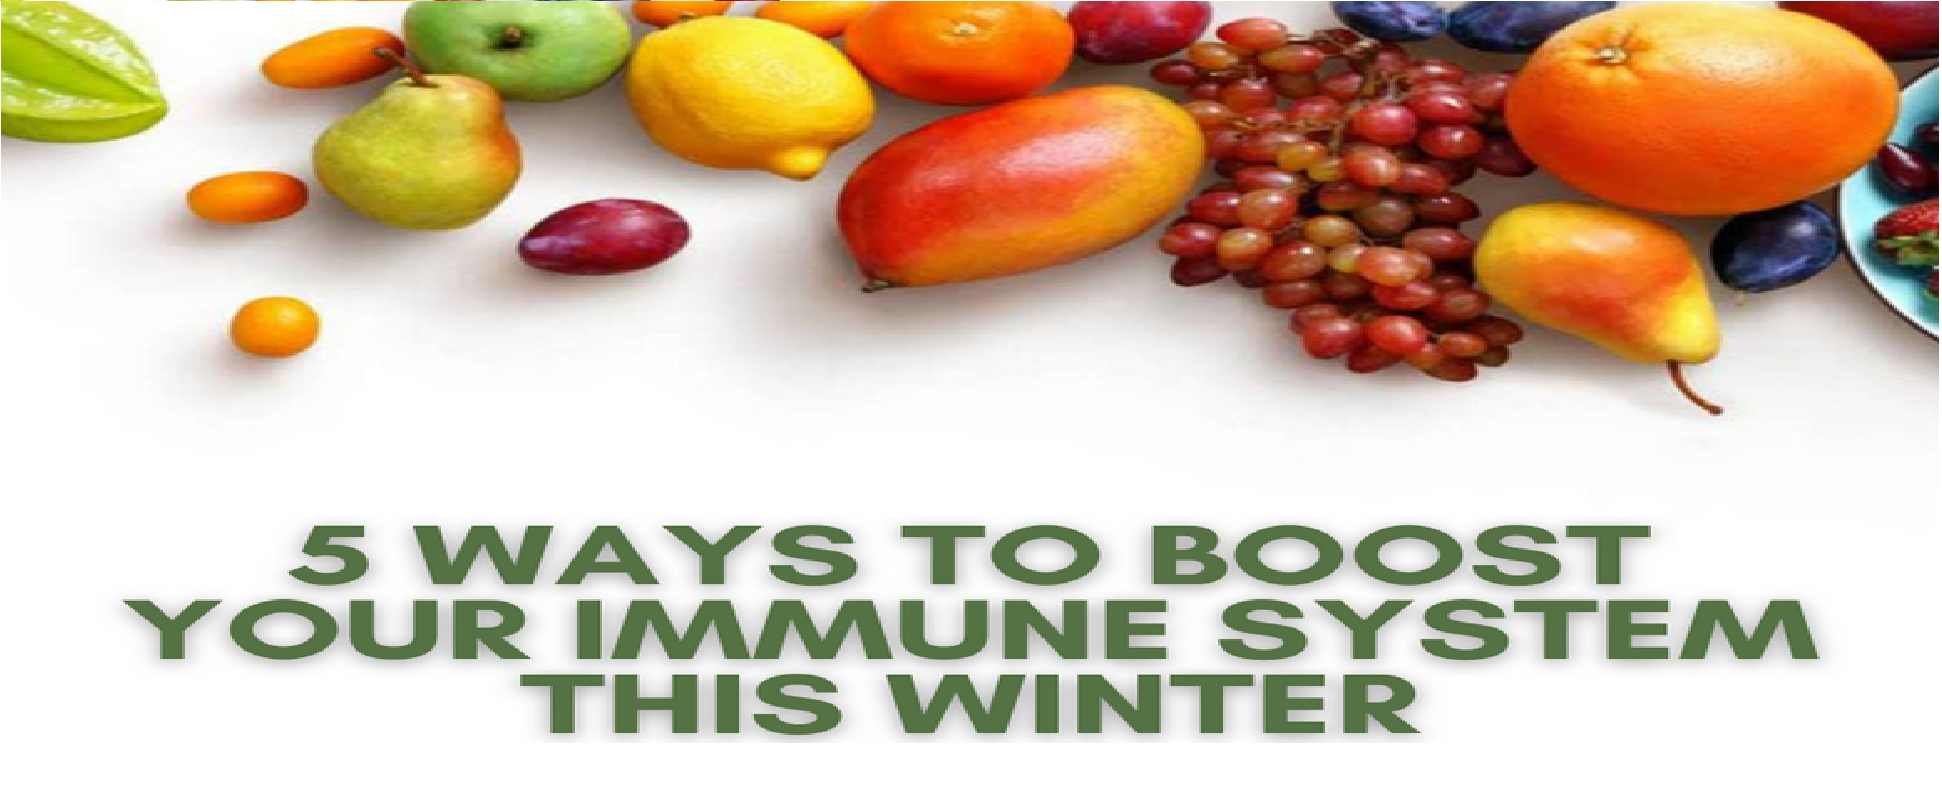 5 Winter Foods to Boost Immunity